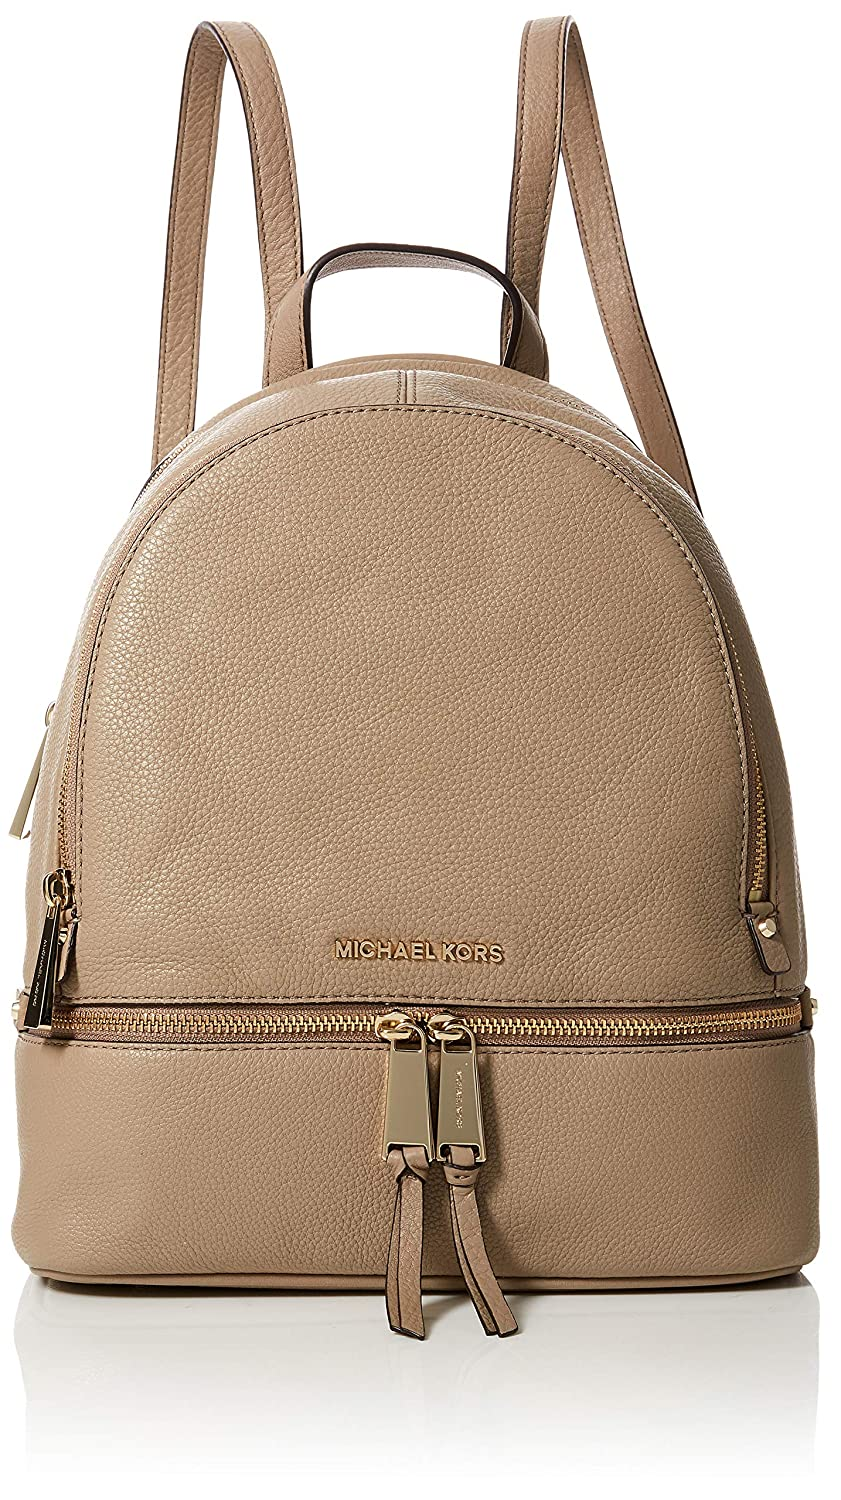 534d27d93c7c Amazon.com: Michael Kors Womens Rhea Zip Backpack Handbag Beige (TRUFFLE):  Shoes